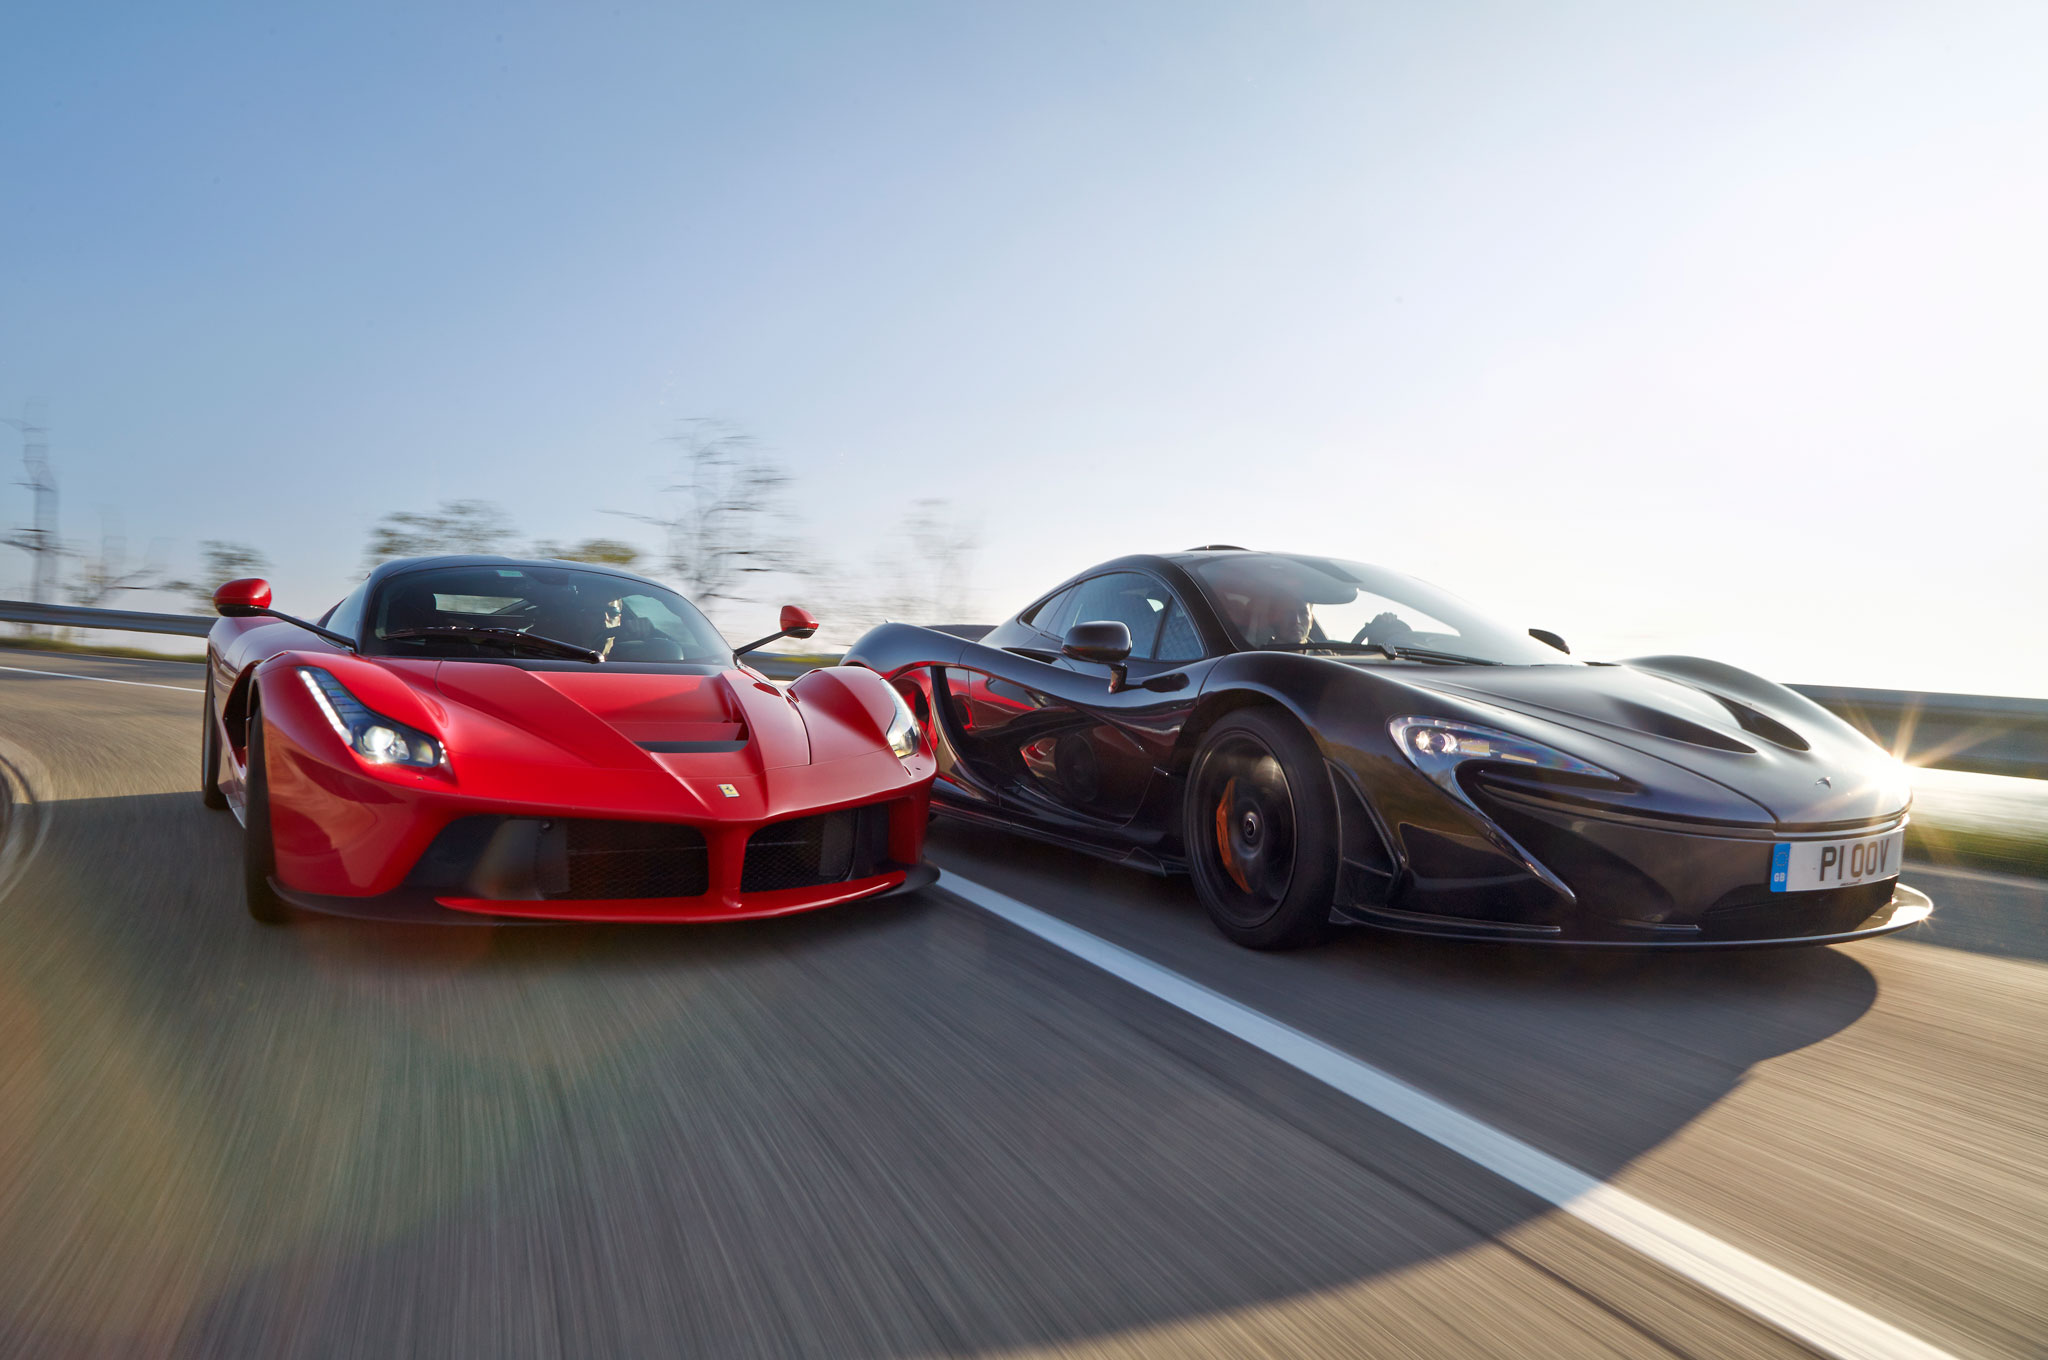 mclaren p1 vs laferrari. 747 mclaren p1 vs laferrari